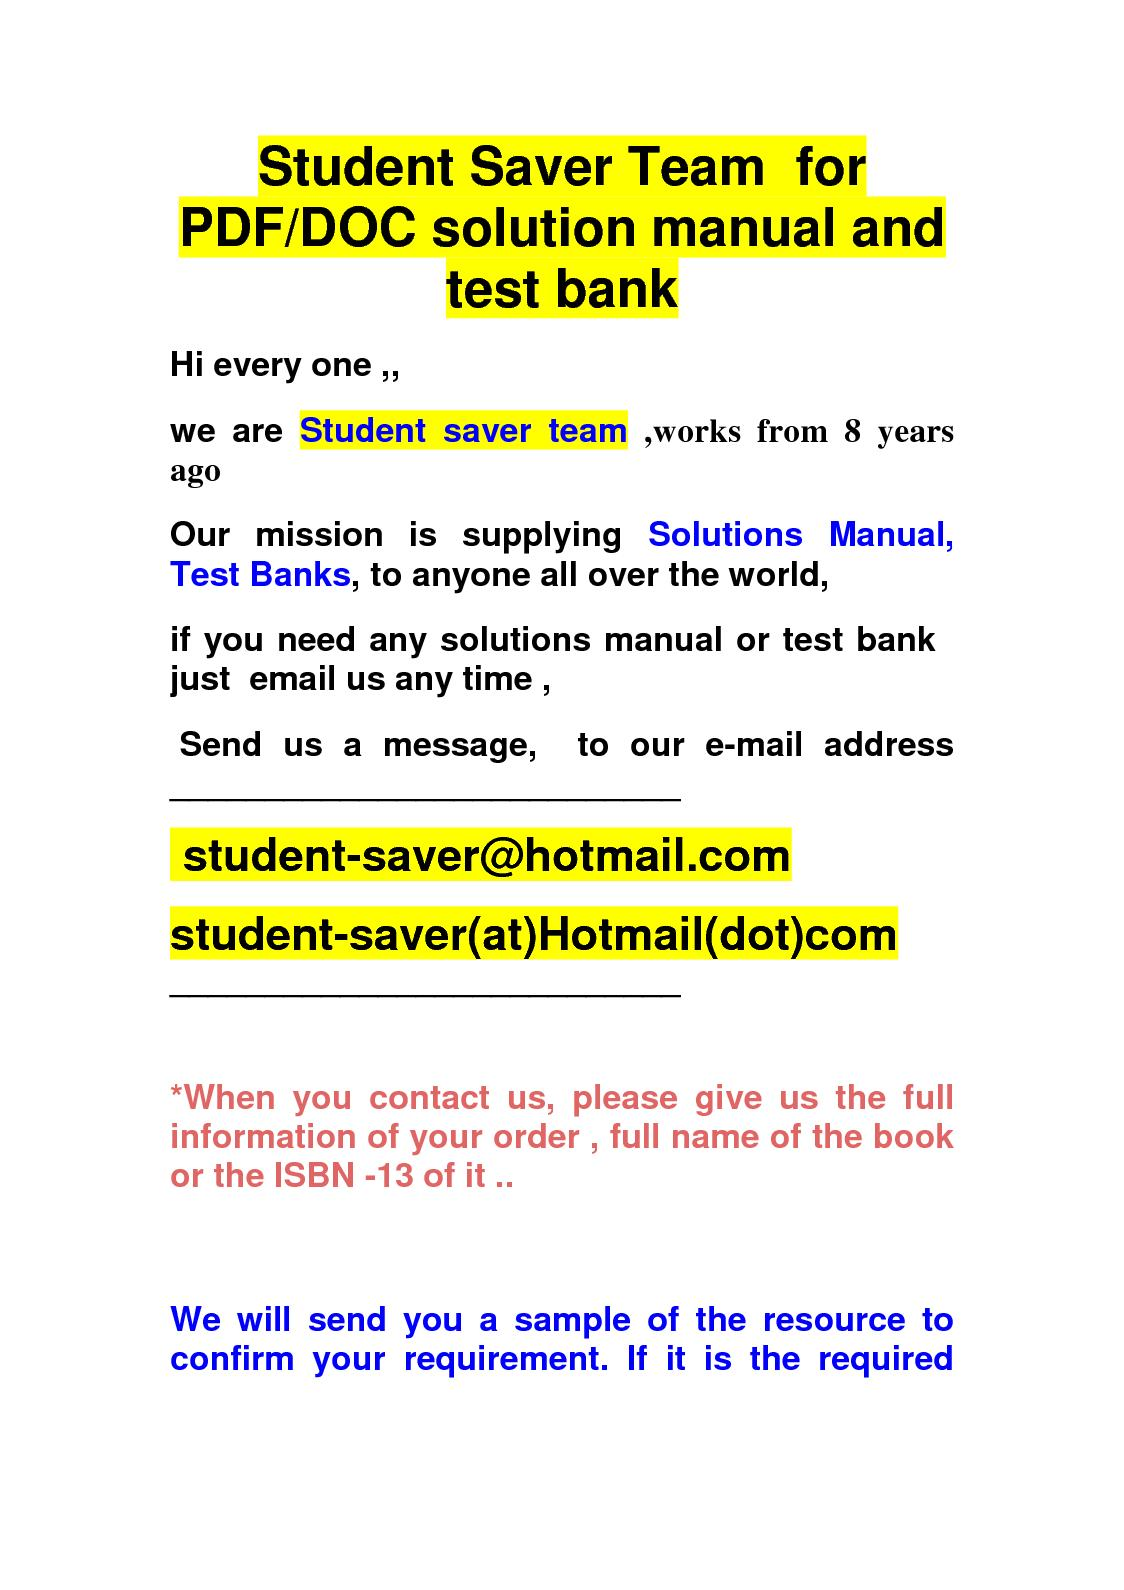 Calaméo - Solution Manual And Test Bank Student Saver Team Small List